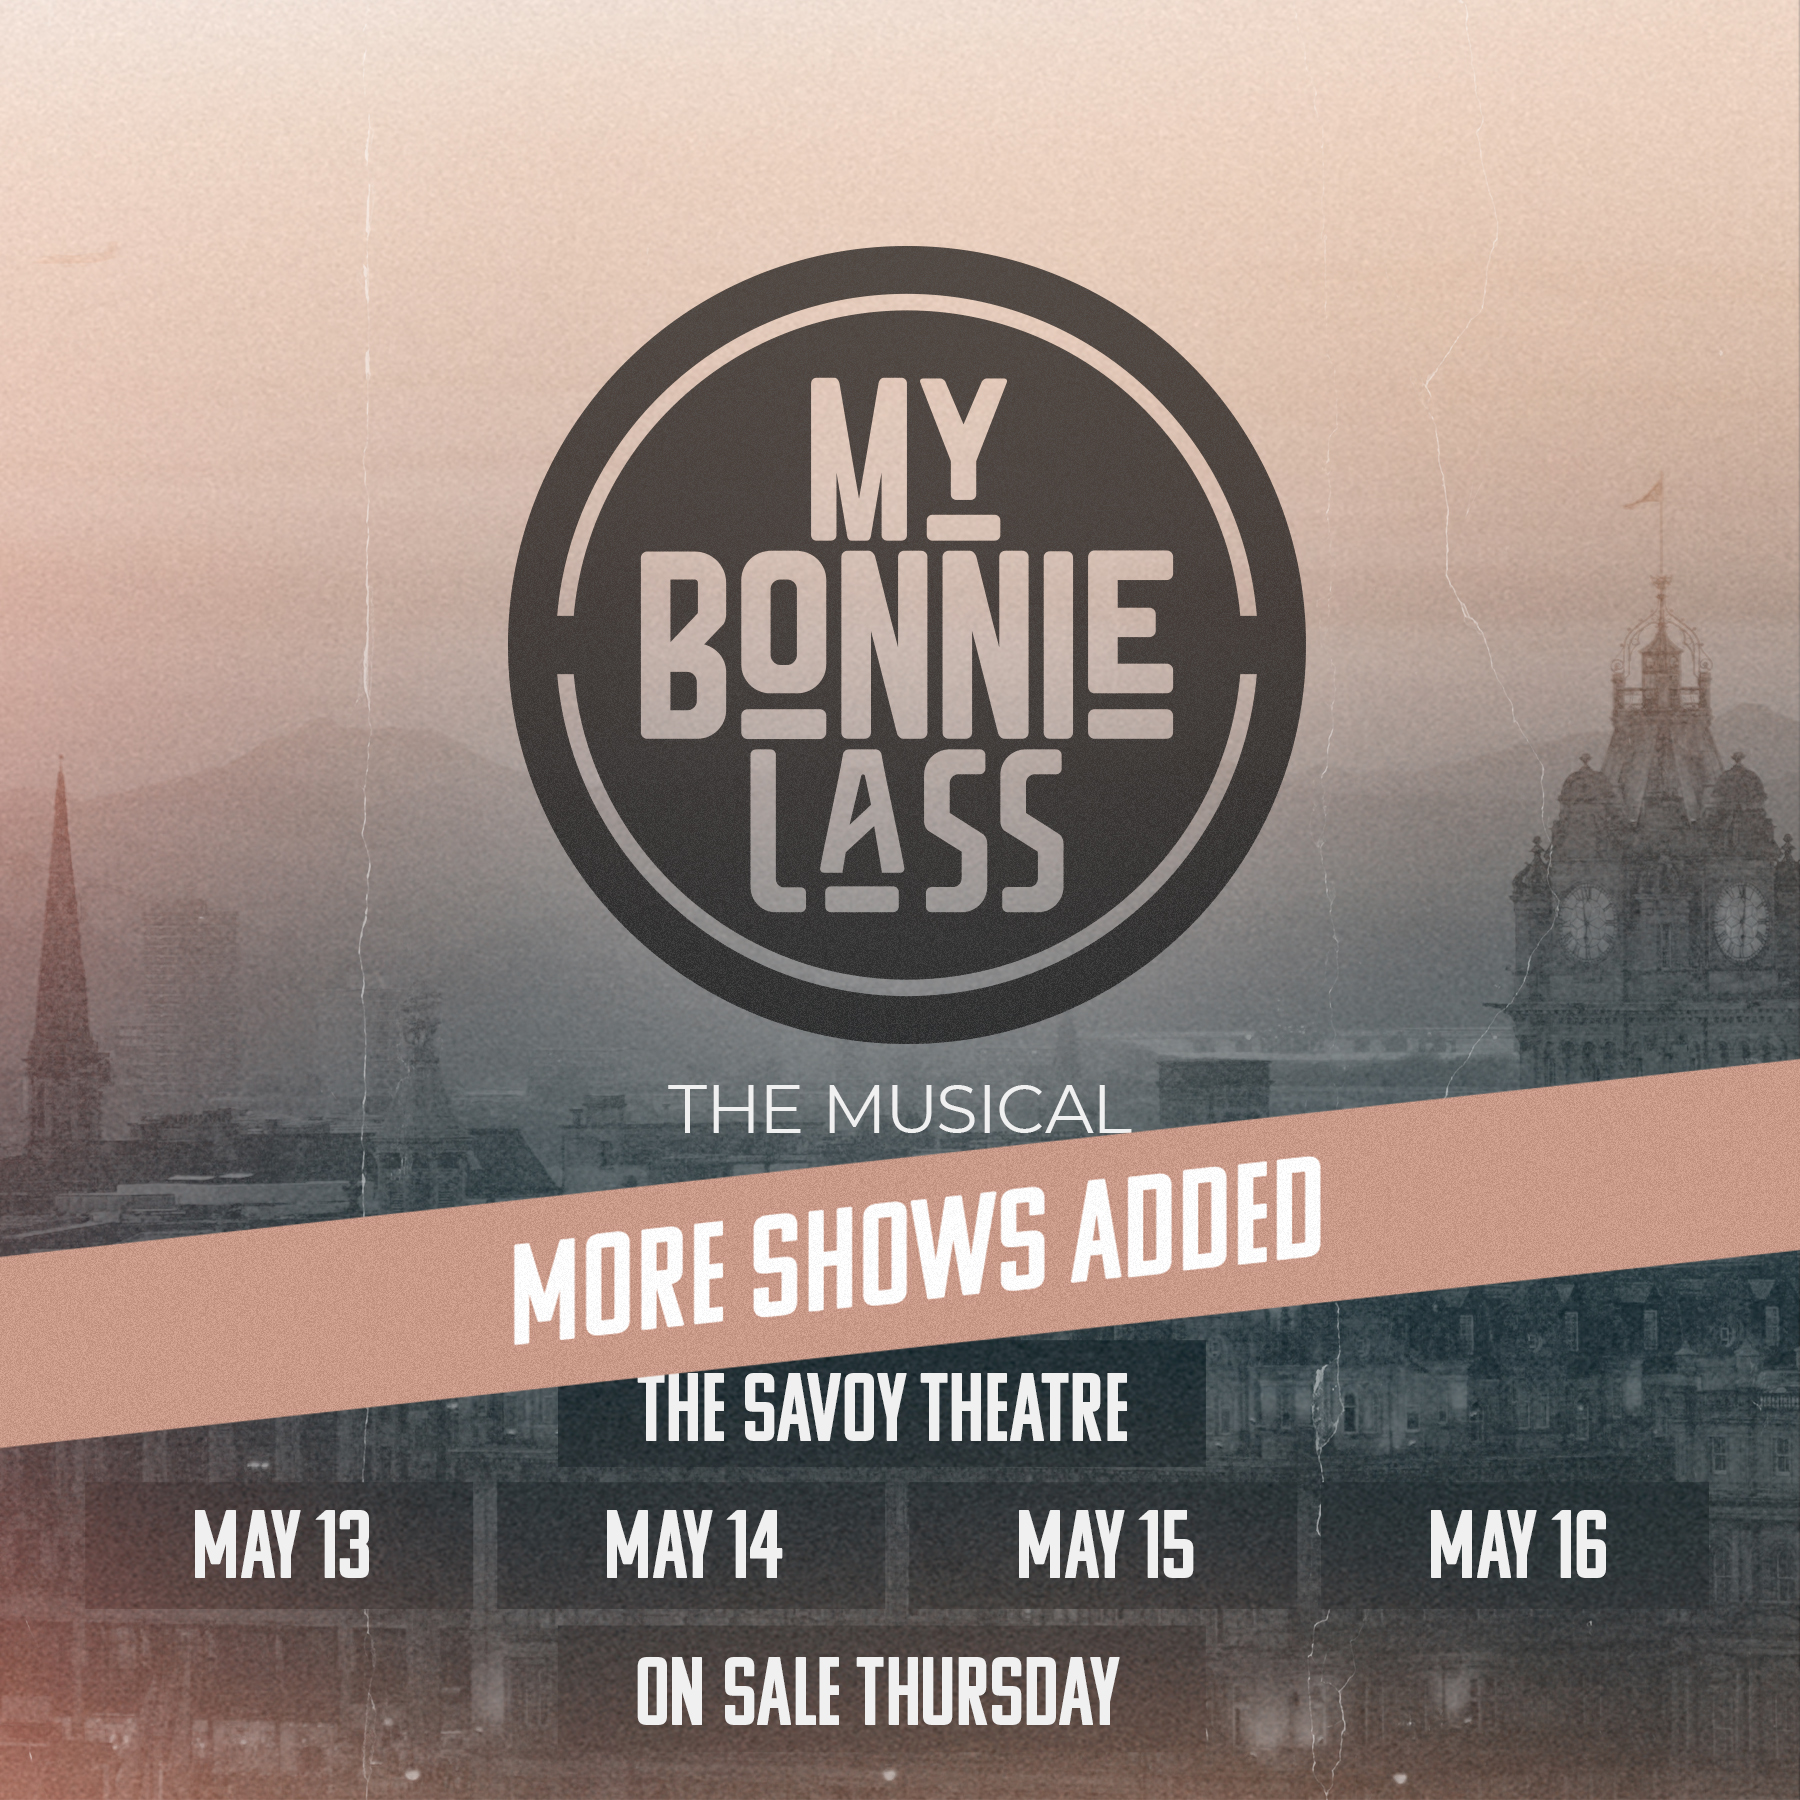 Four More MY BONNIE LASS Shows Added